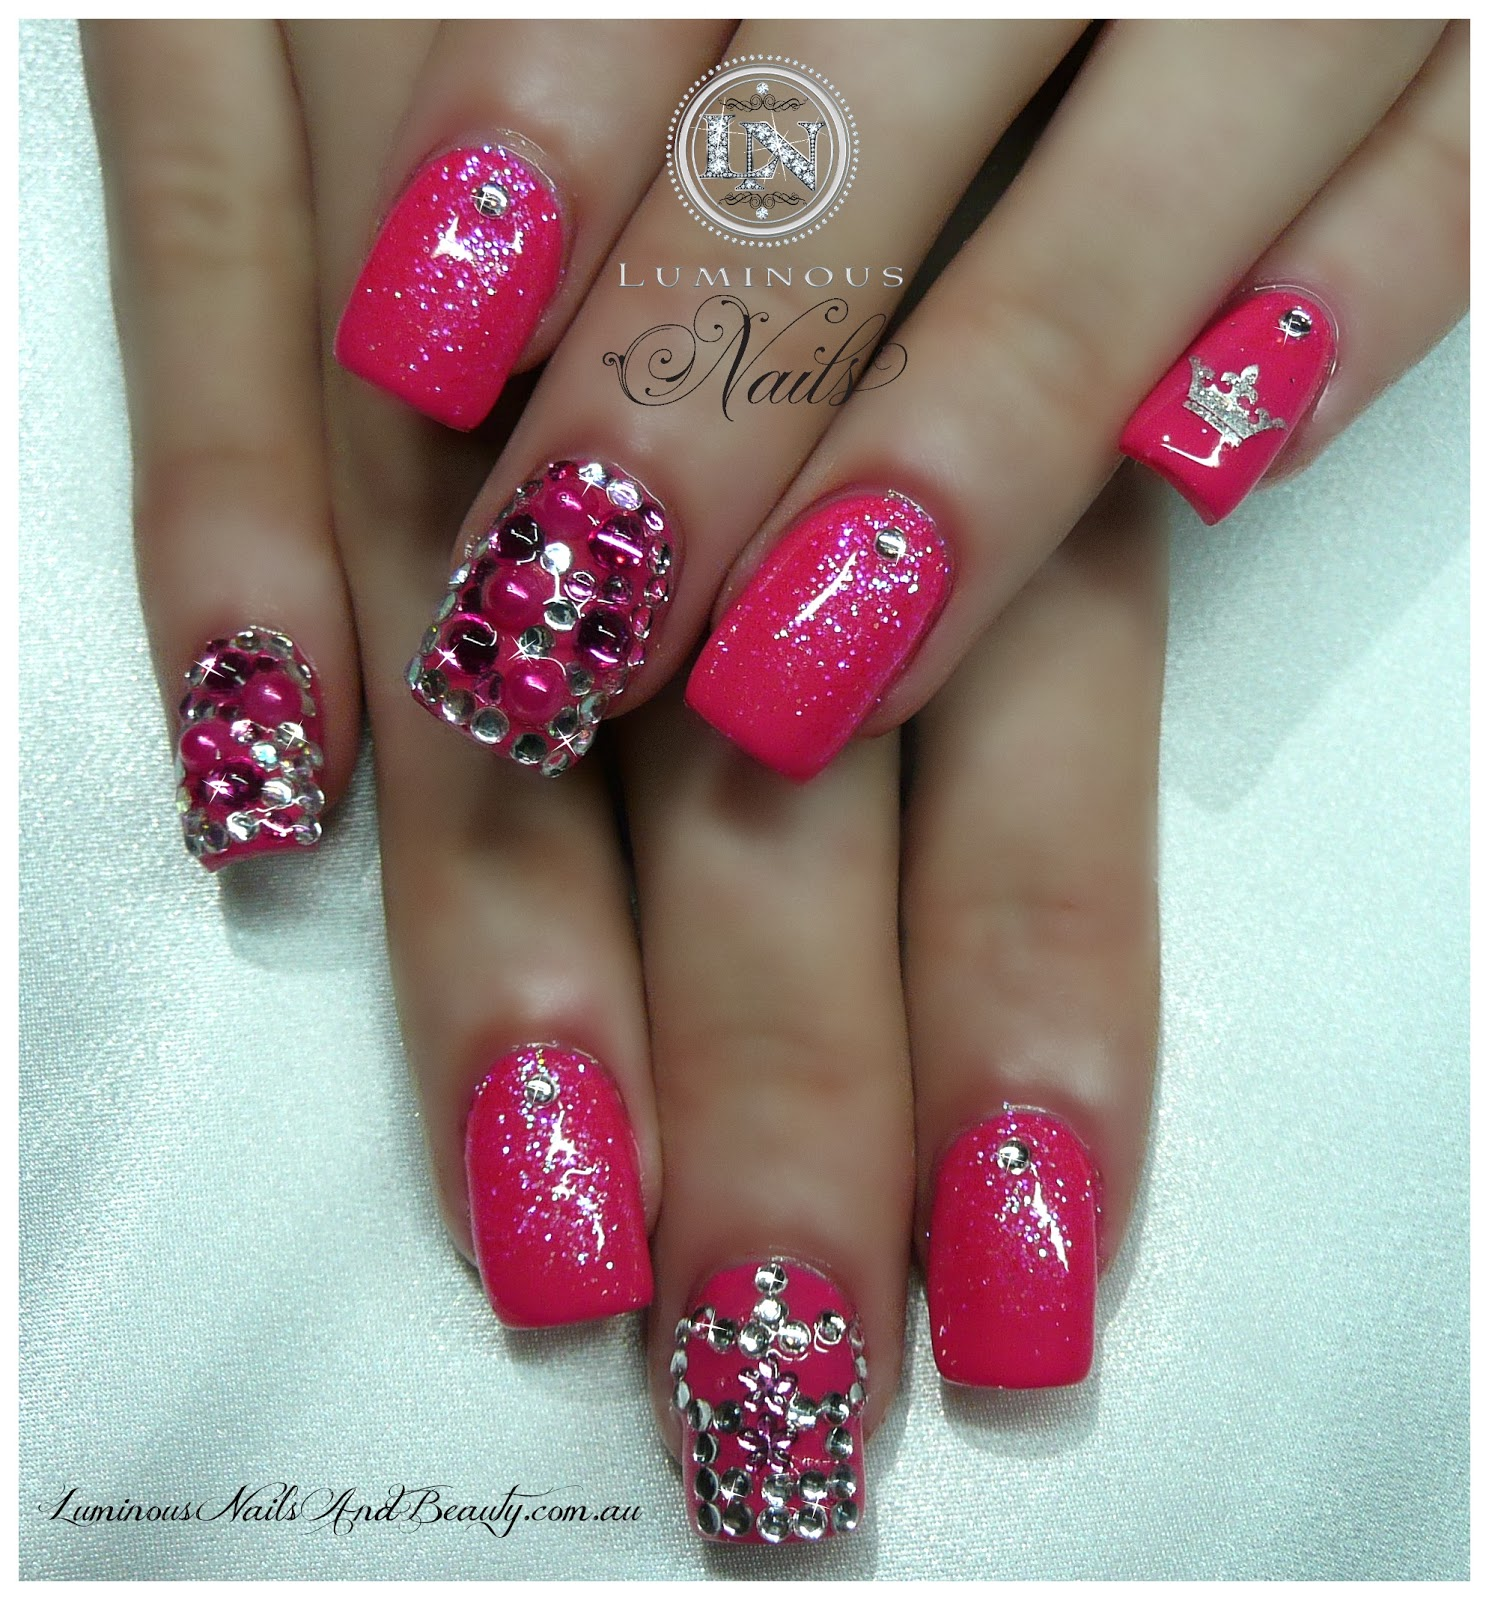 white tip nail designs with glitter - 20 Glitter Nail Designs For The Everyday Glamazon